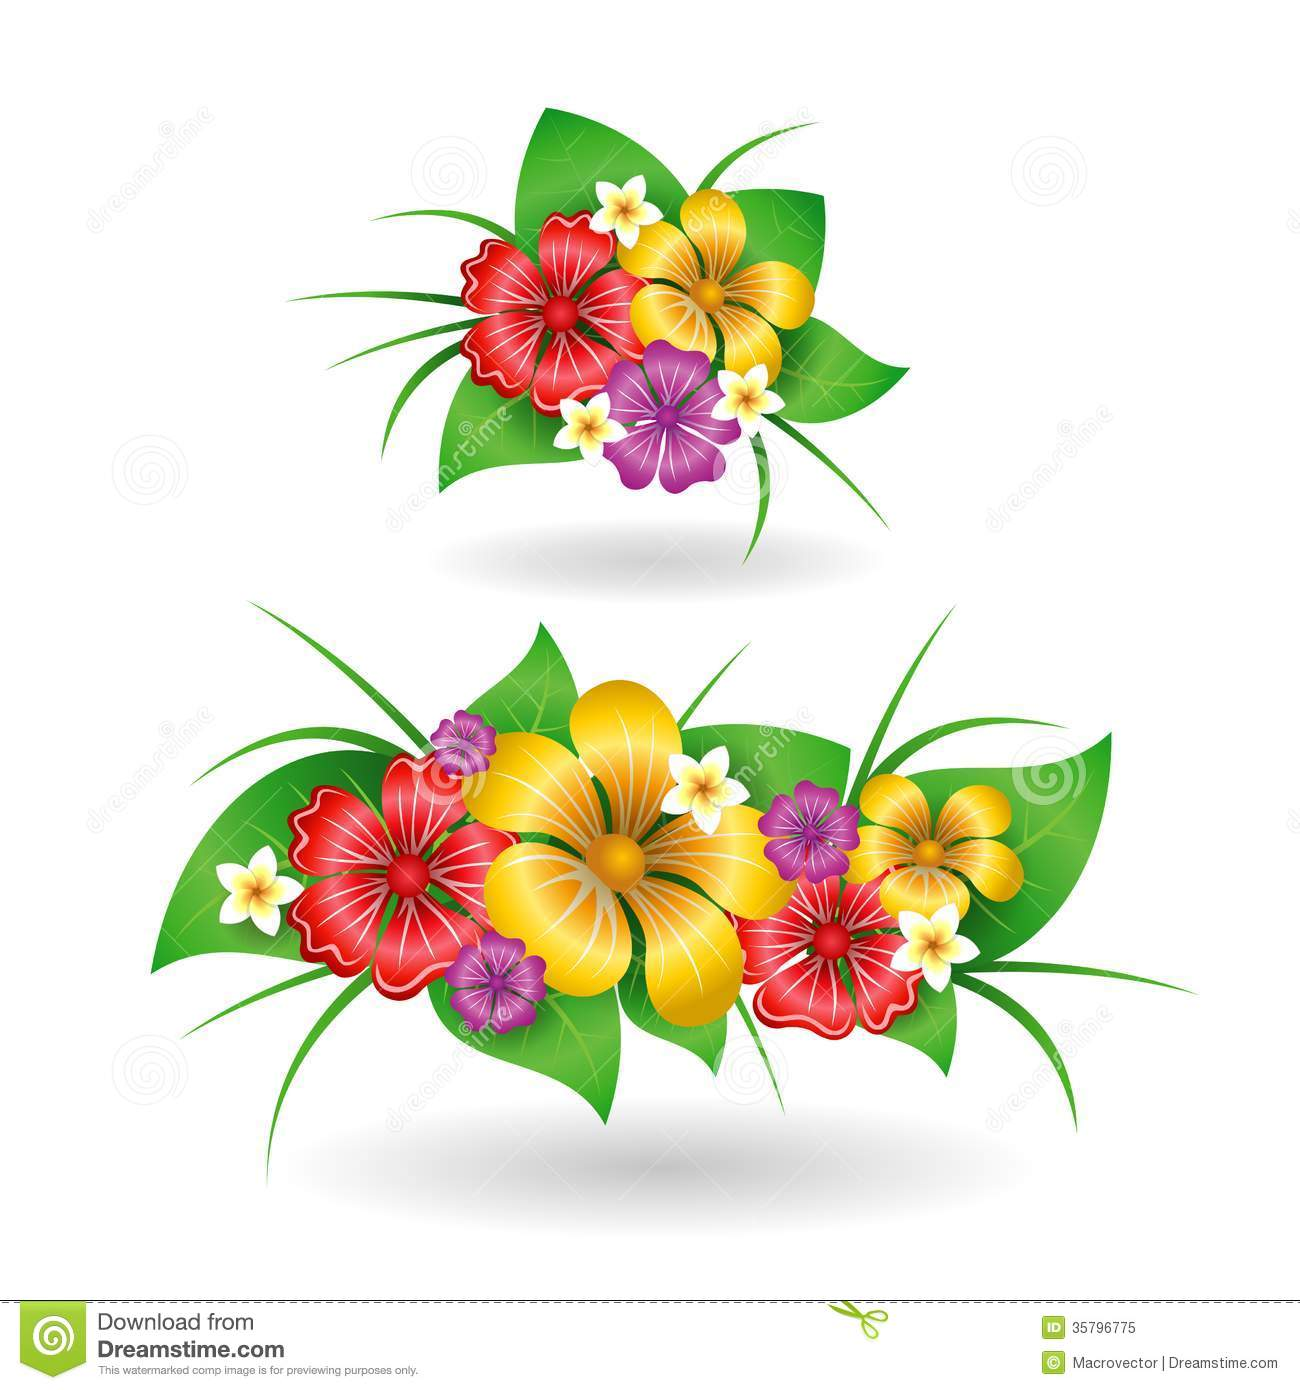 Tropical Flowers Decor Elements Royalty Free Stock Photo.